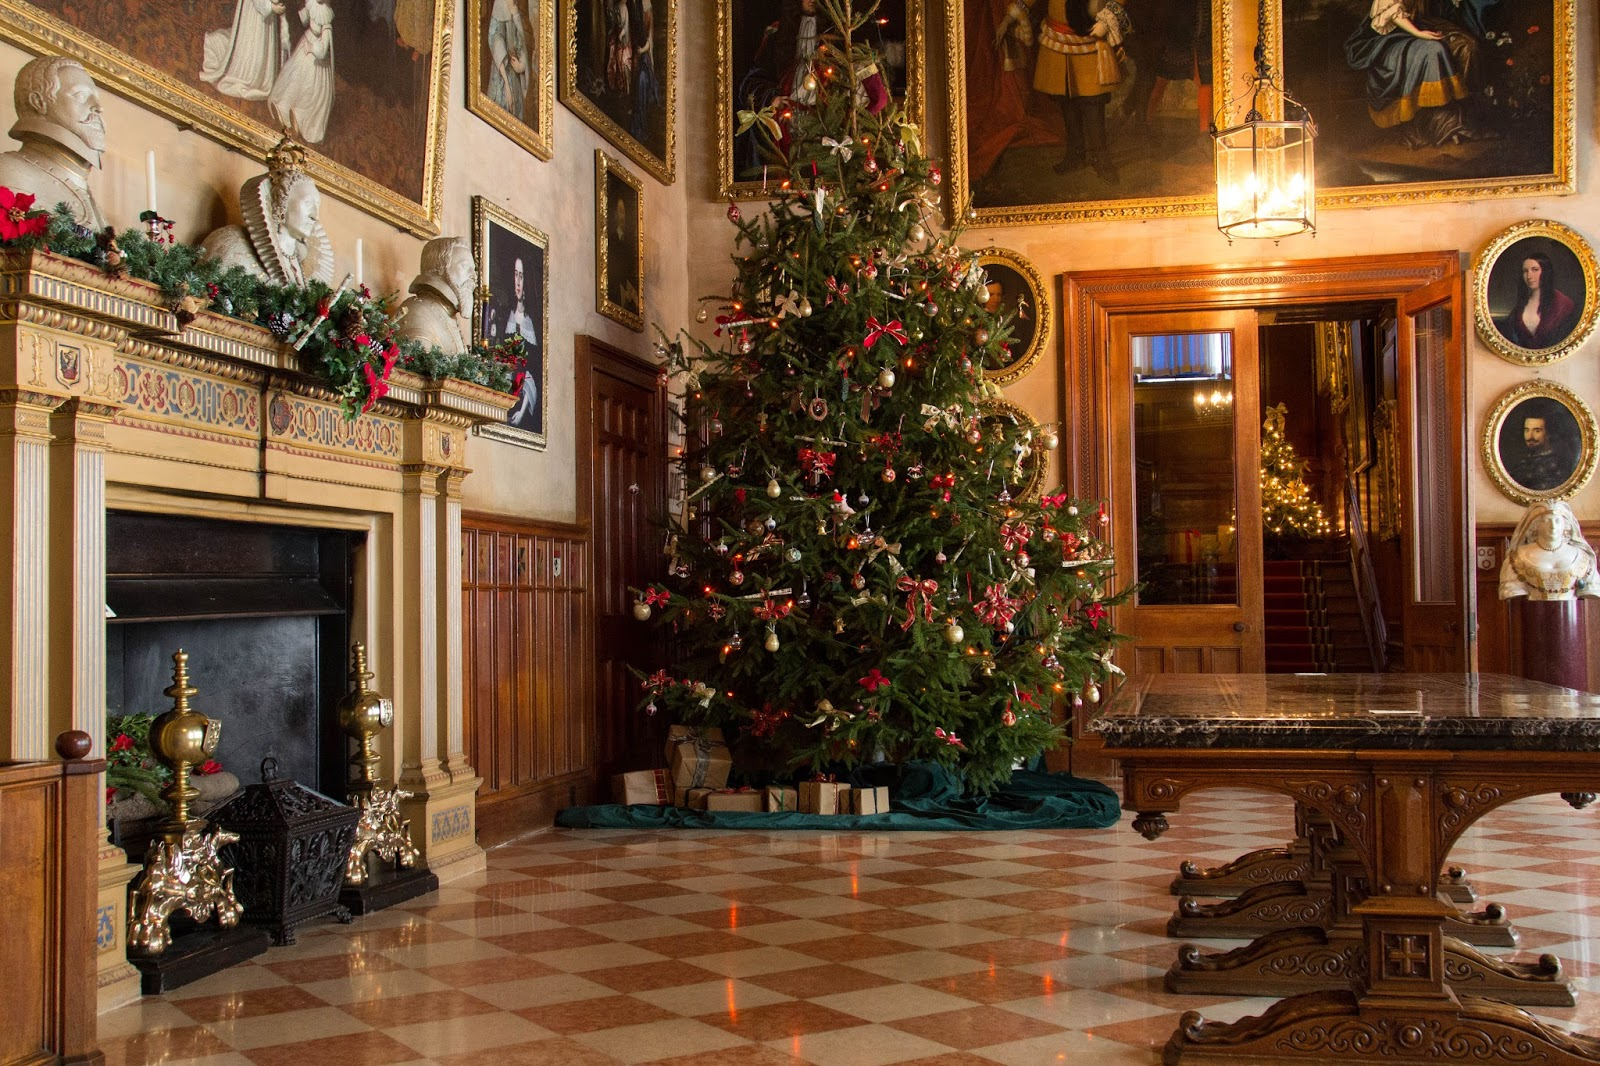 Escapes and Photography: A Victorian Christmas at Charlecote Park